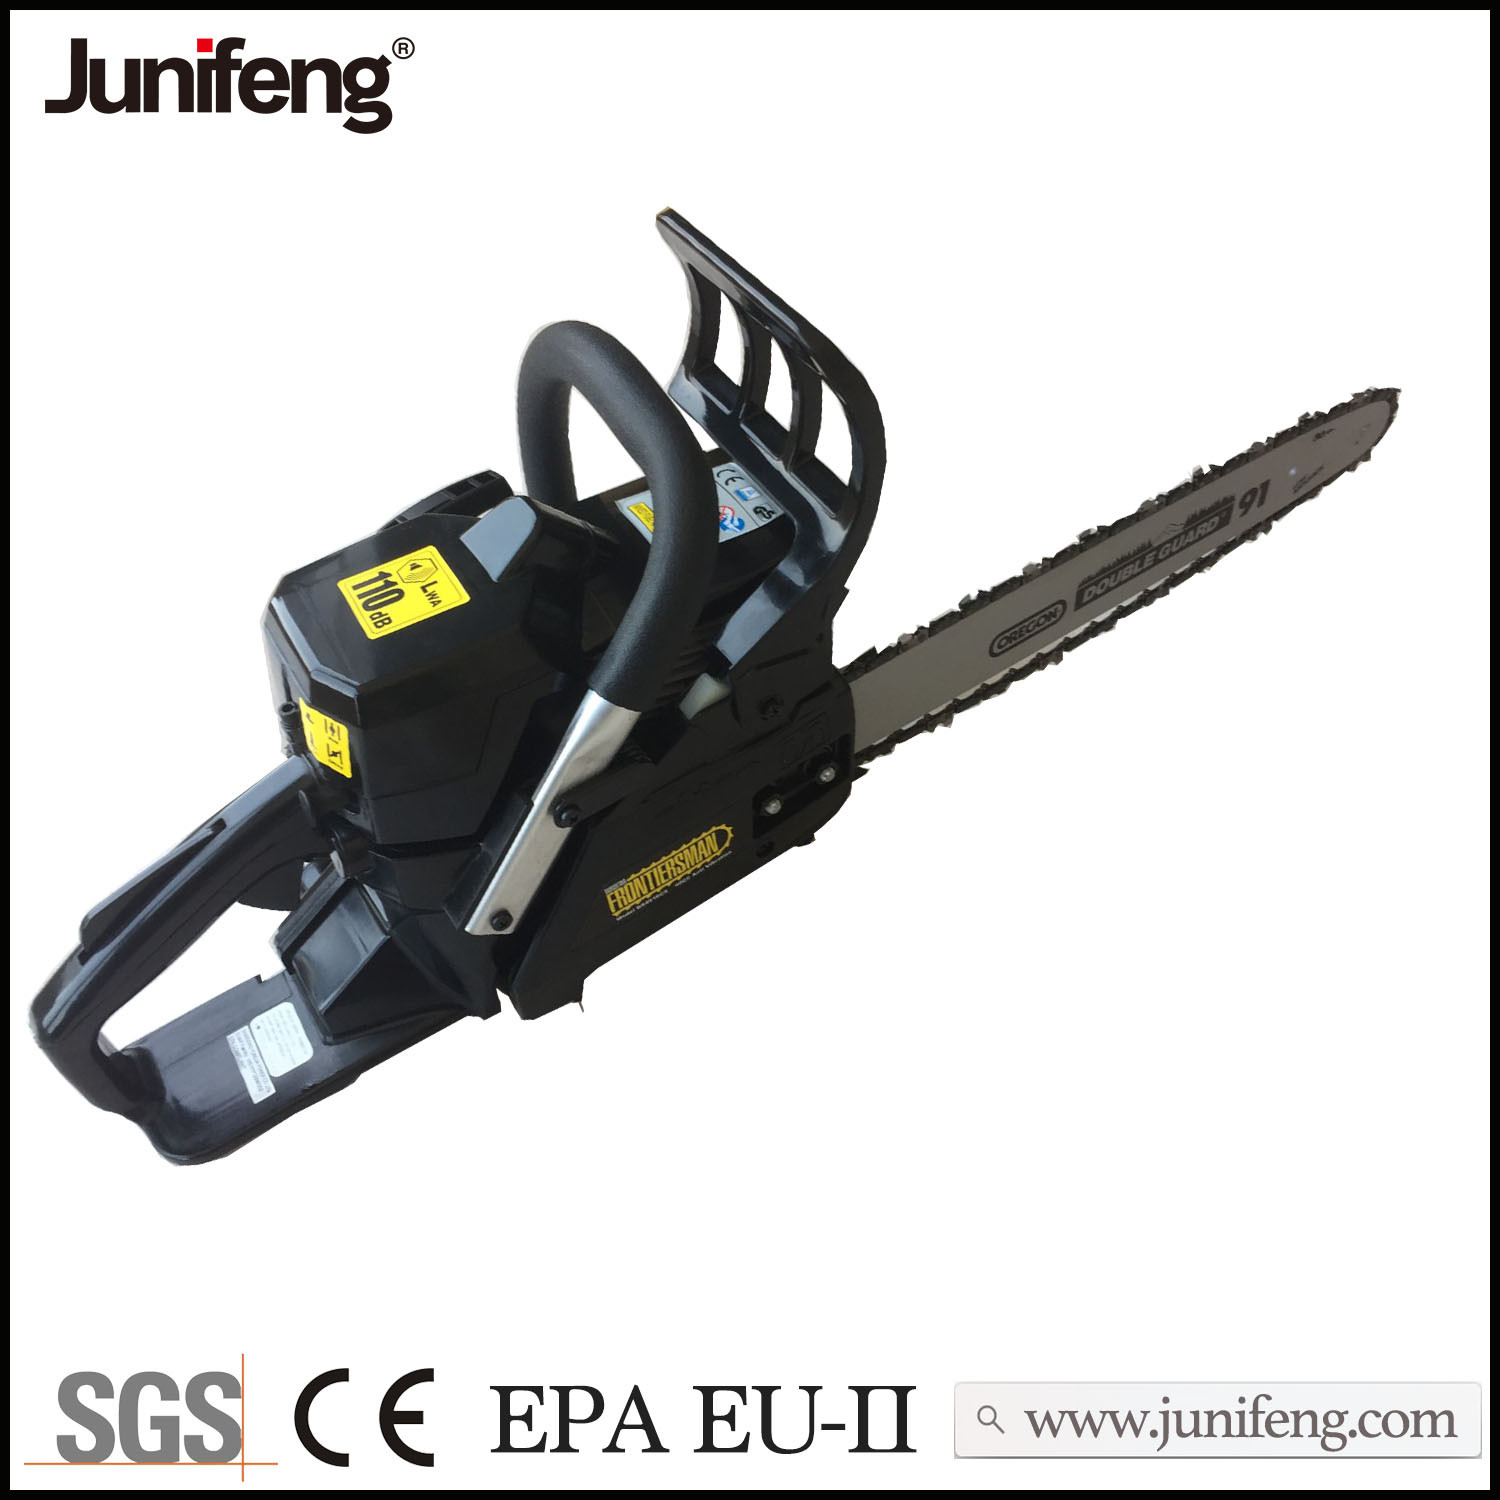 2-Stroke Gas Chain Saw Hand Tools